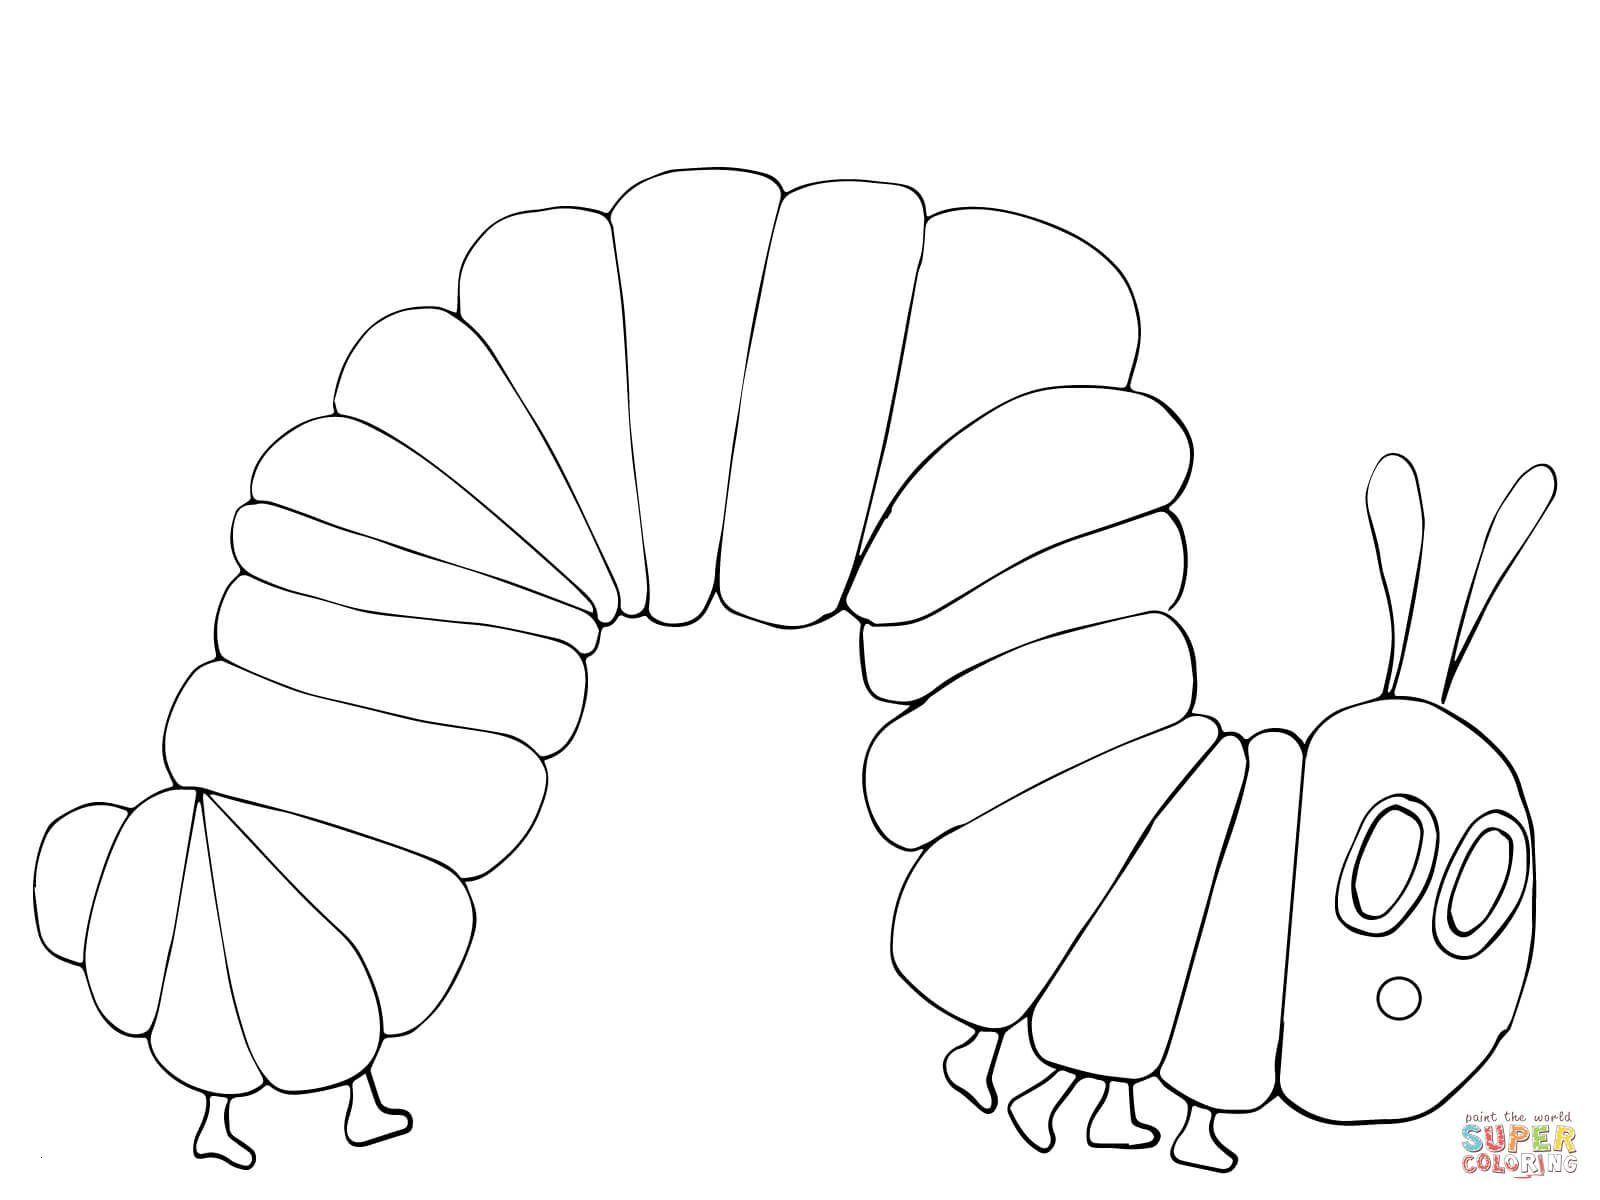 Very Hungry Caterpillar Coloring Page Cool Photography The Very Hungry Cate Very Hungry Caterpillar Printables Hungry Caterpillar Hungry Caterpillar Activities